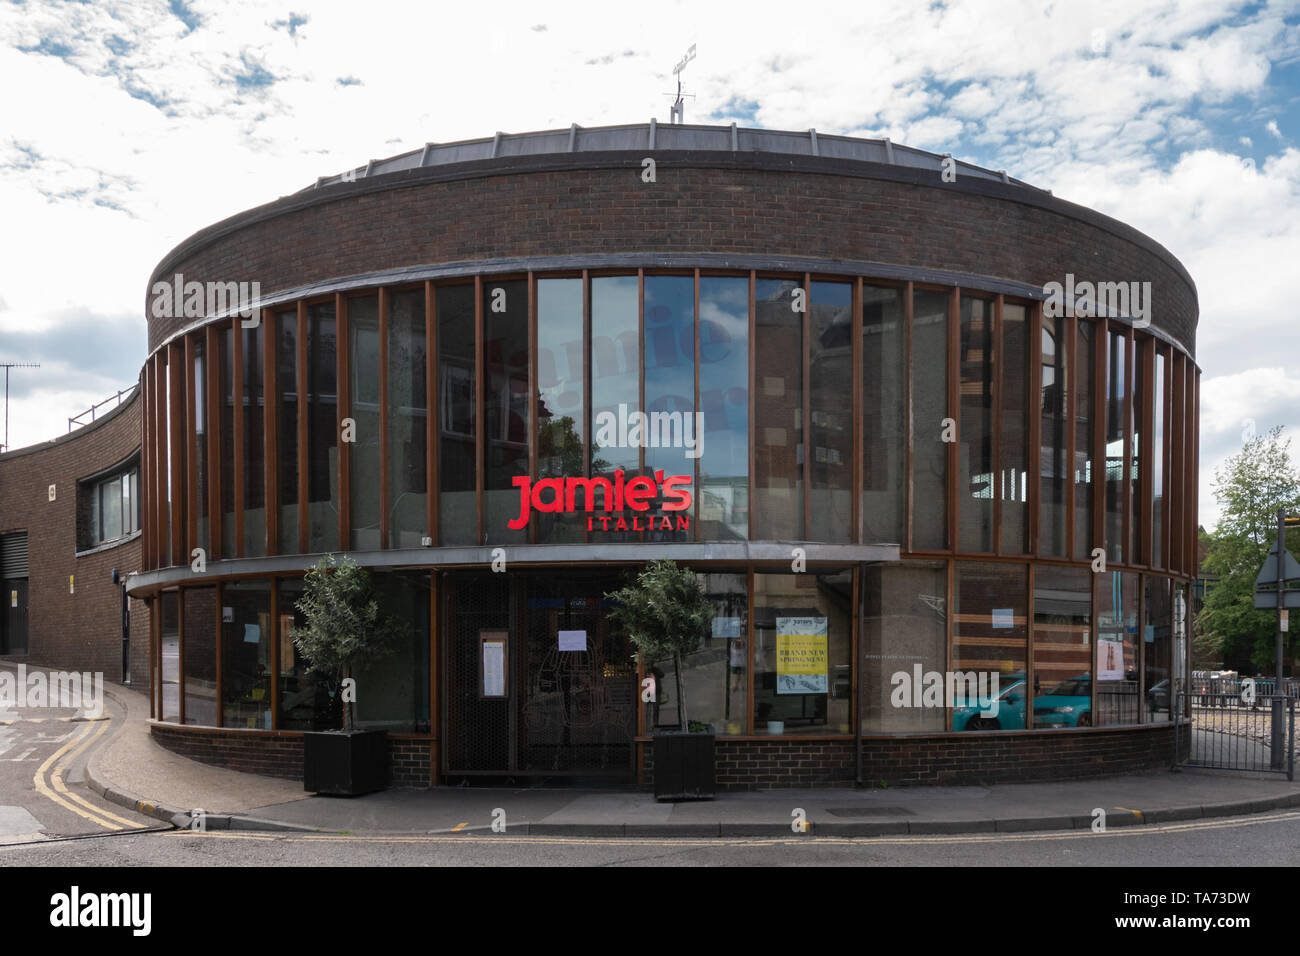 Jamie's Italian restaurant in the Surrey town of Guildford